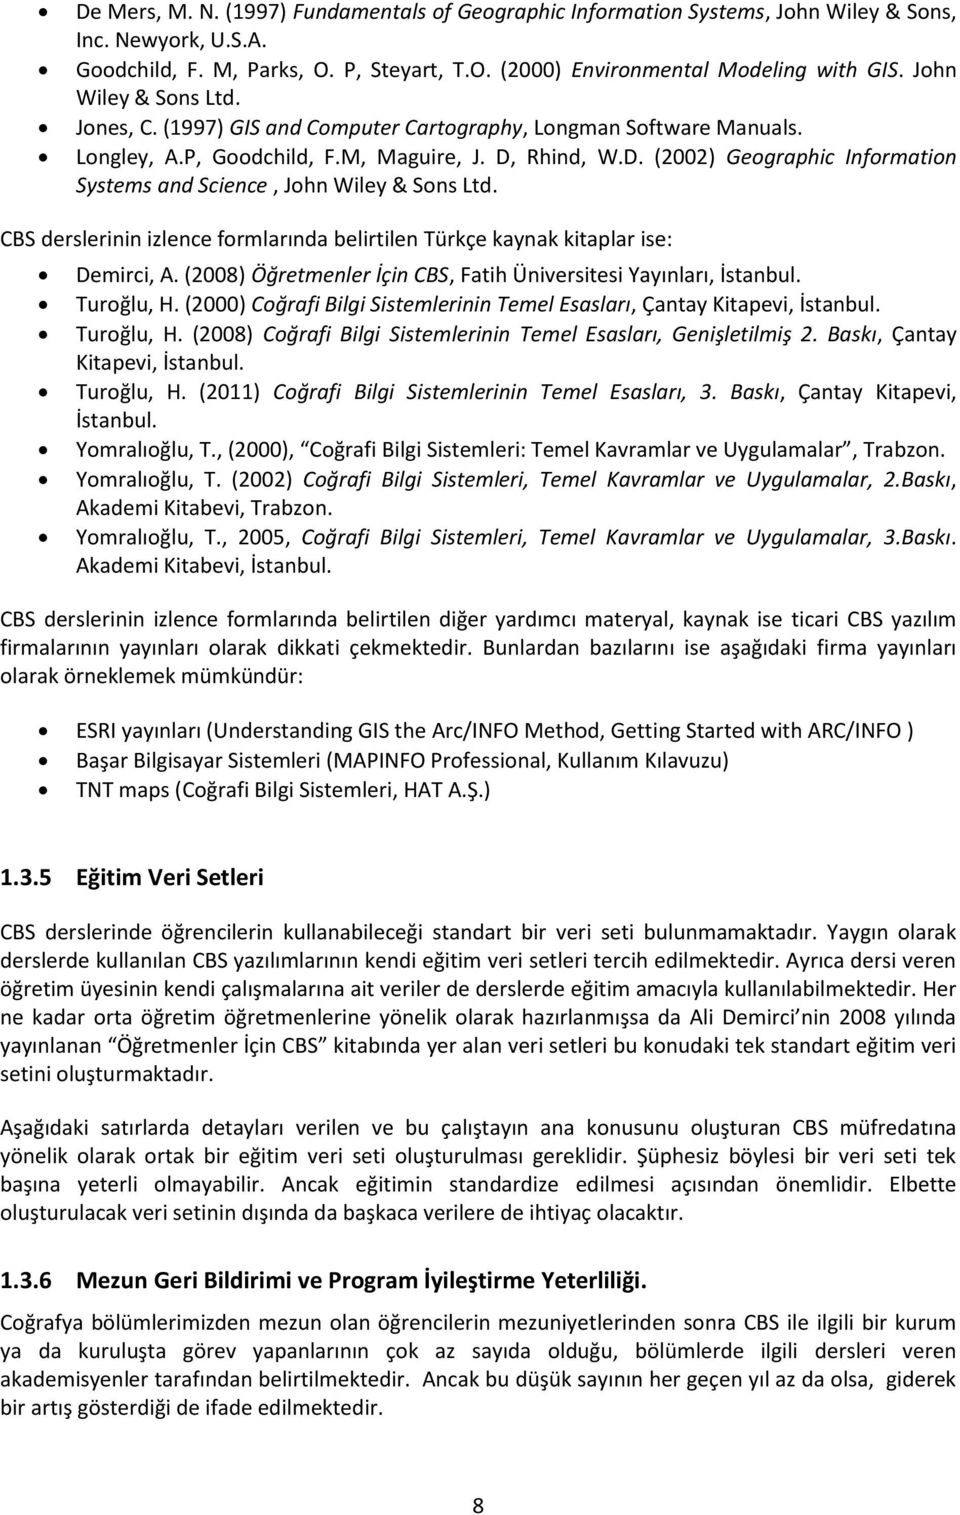 Rhind, W.D. (2002) Geographic Information Systems and Science, John Wiley & Sons Ltd. CBS derslerinin izlence formlarında belirtilen Türkçe kaynak kitaplar ise: Demirci, A.